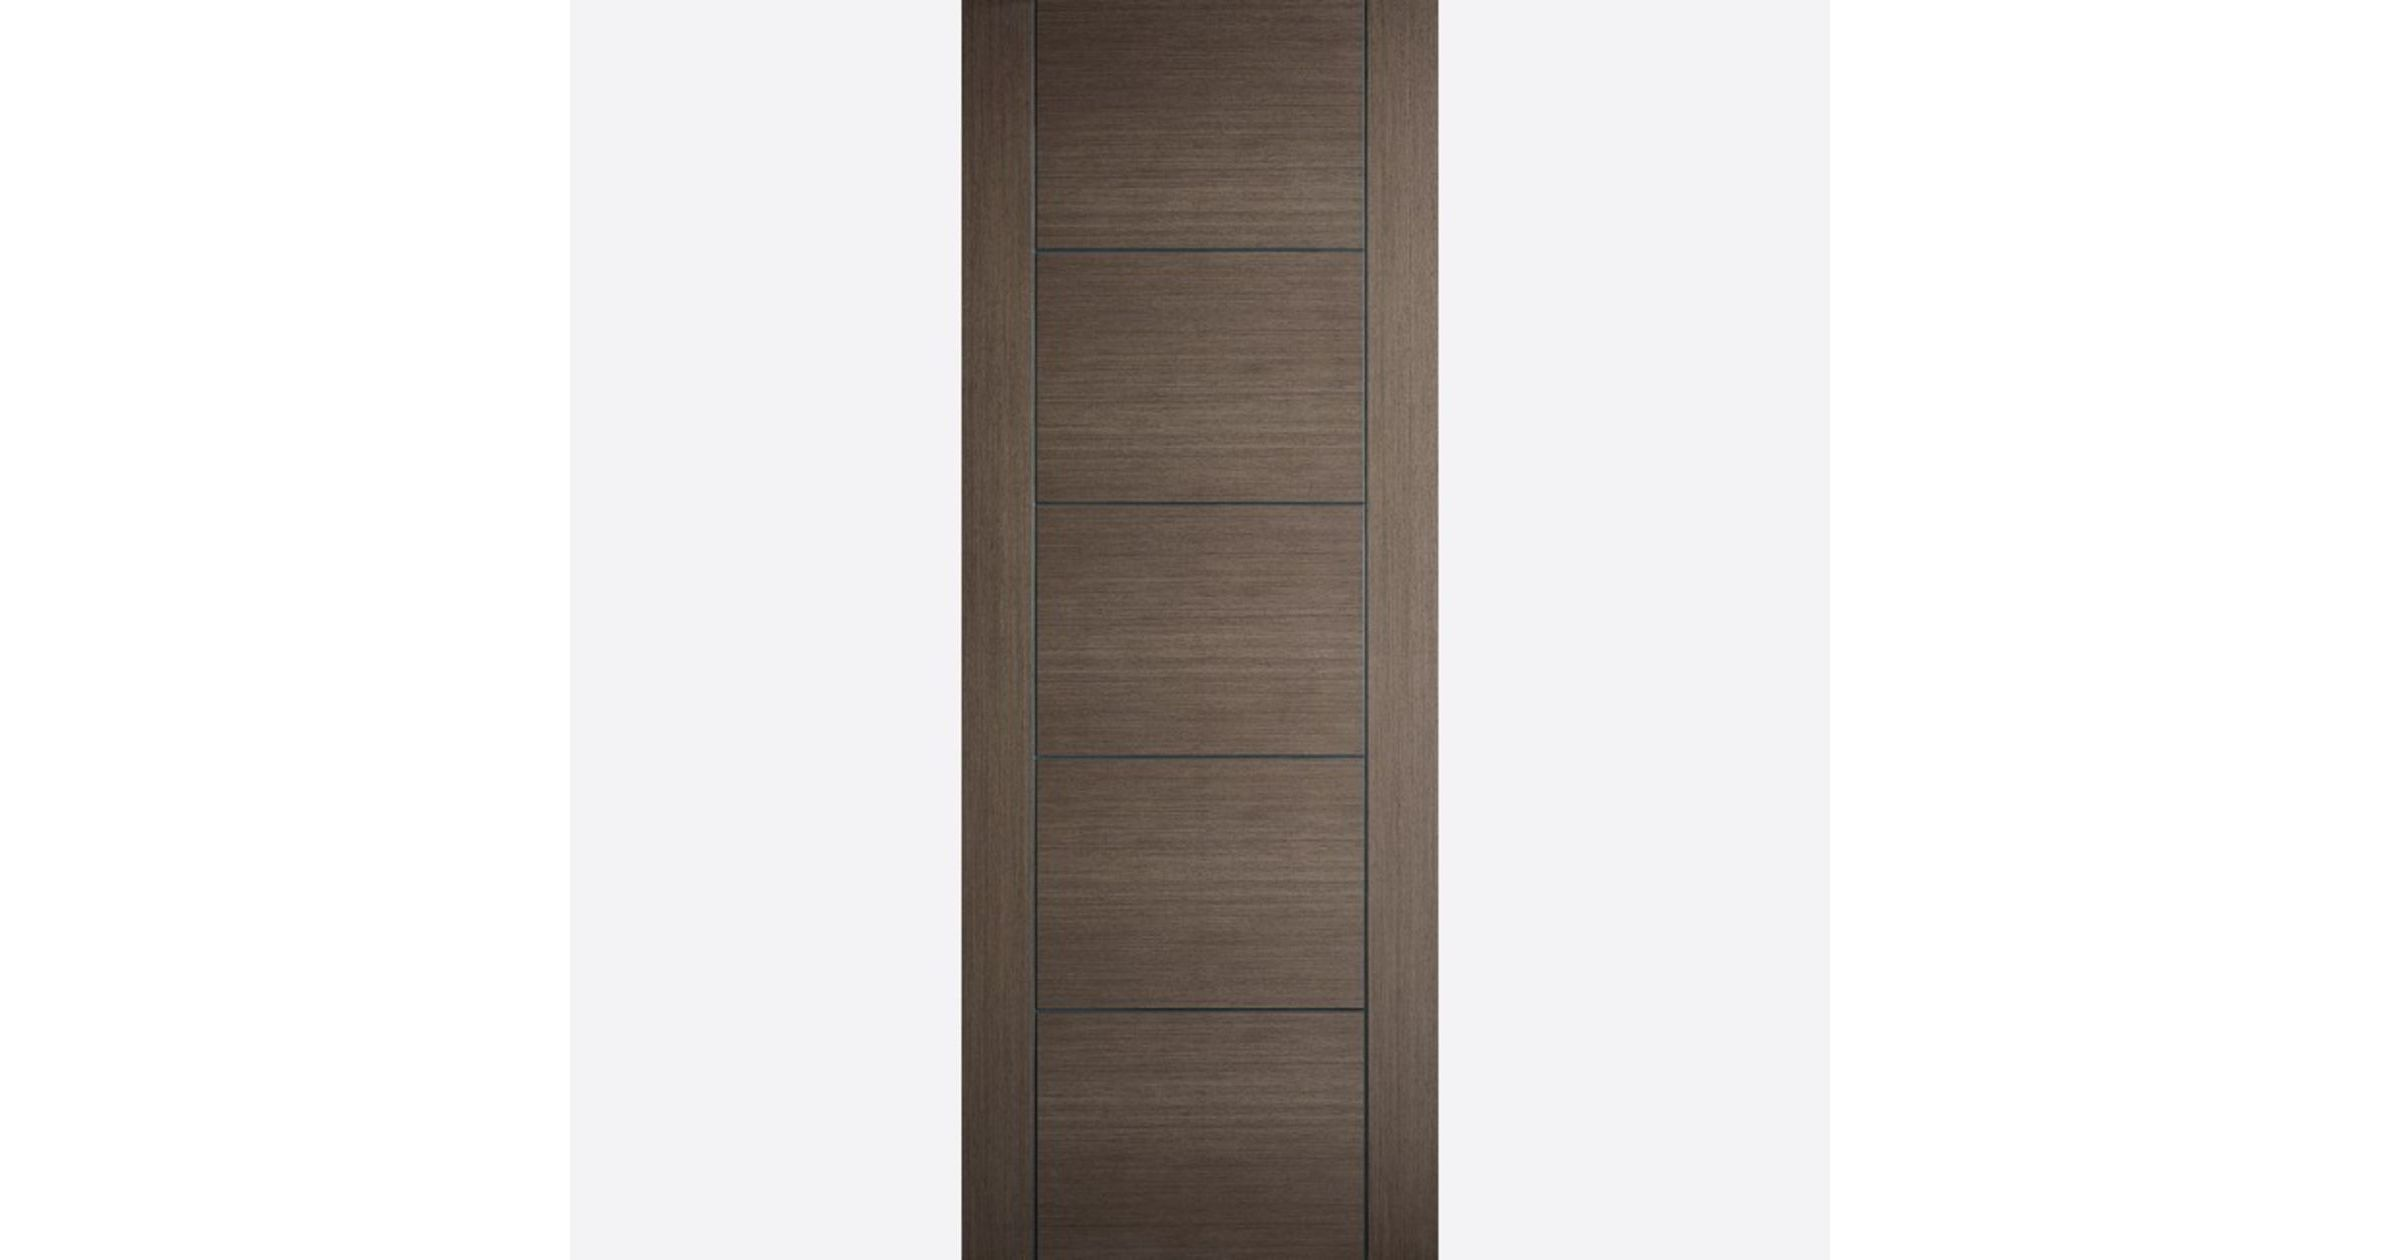 Vancouver Fire Door FD30 Flush *Pre-Finished Chocolate-Grey* 44mm Internal & LPD Colours Real-Veneer FD30 Fire Doors | JAS Timber